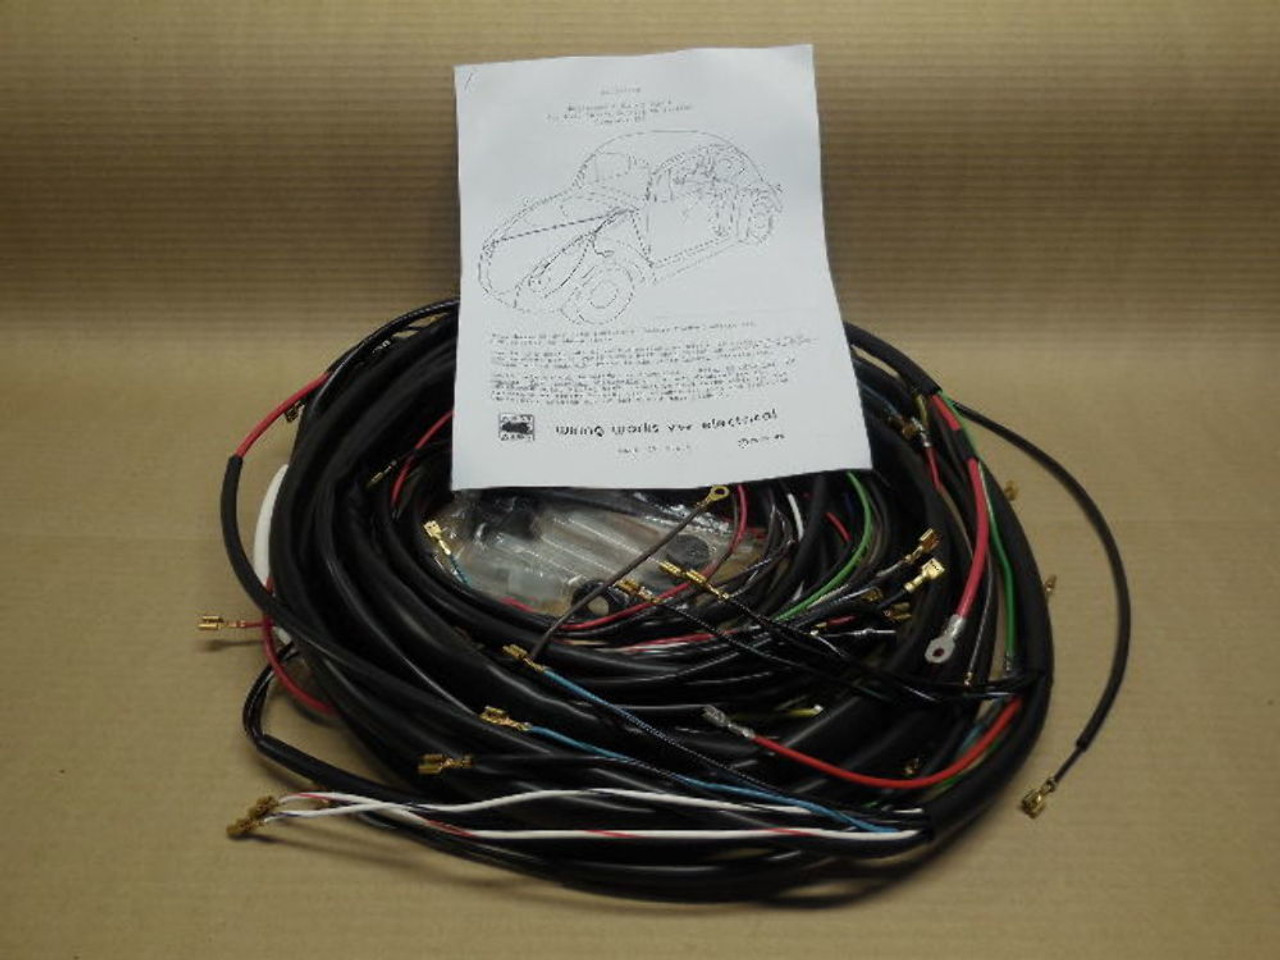 1961-1965 all karmann ghia vw complete wiring works wire harness kit -usa  made